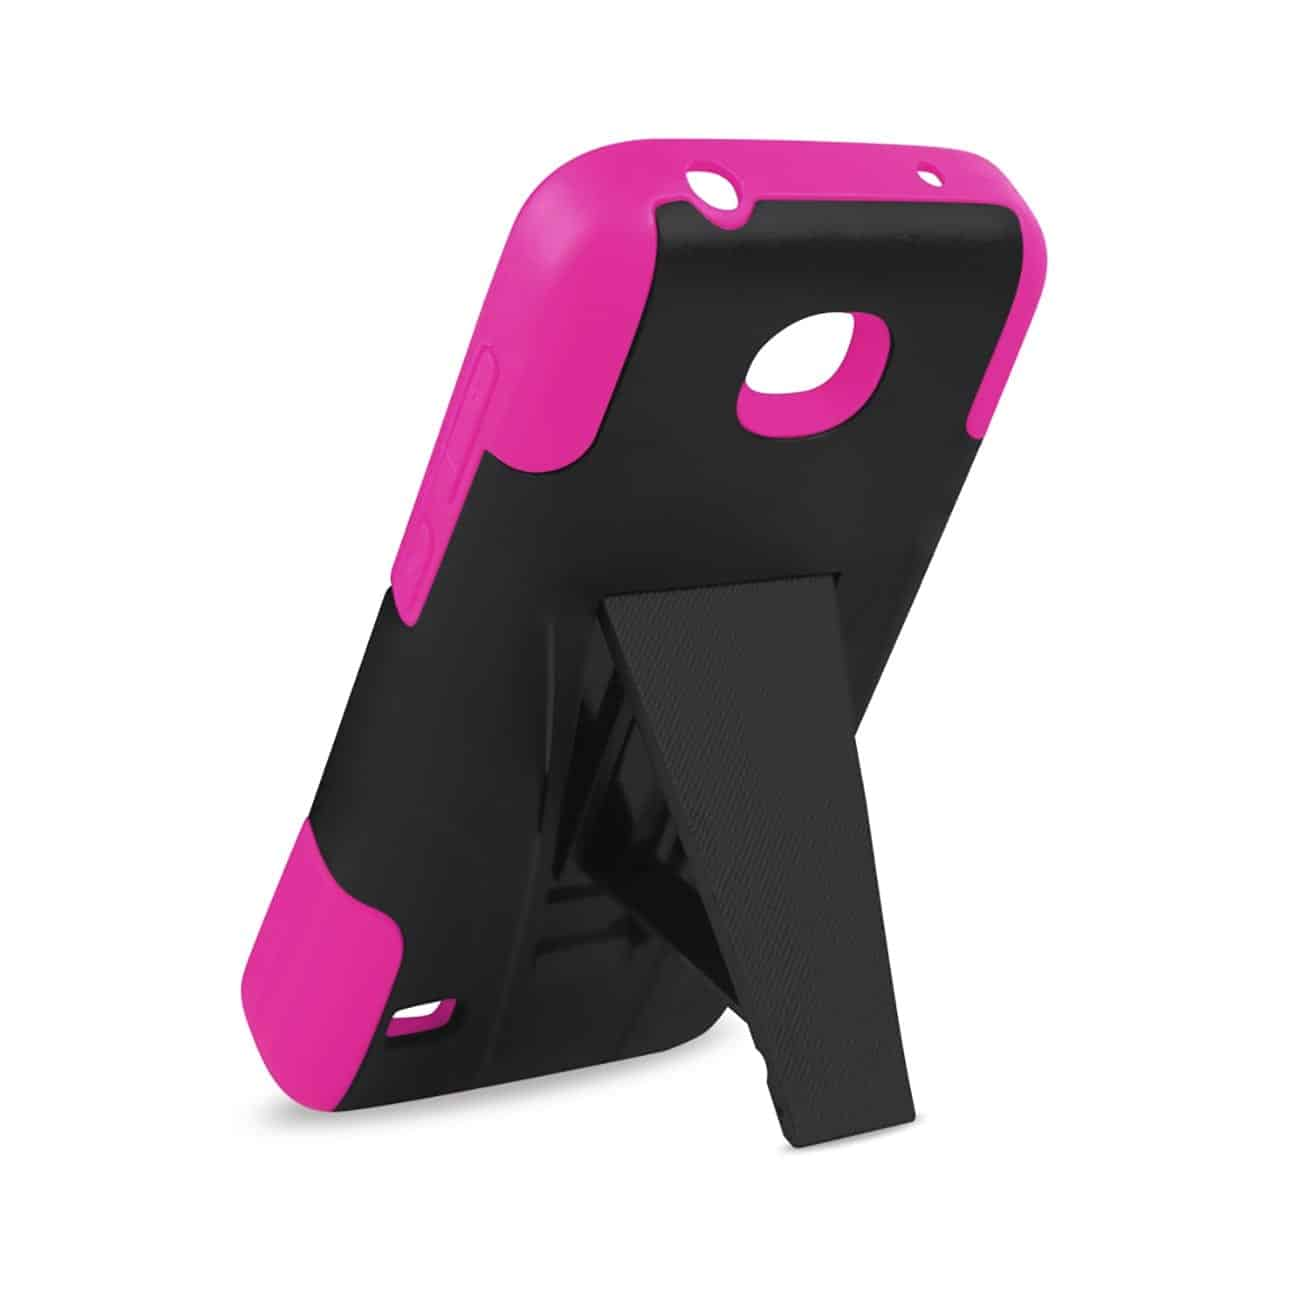 HUAWEI UNION HYBRID HEAVY DUTY CASE WITH KICKSTAND IN HOT PINK BLACK